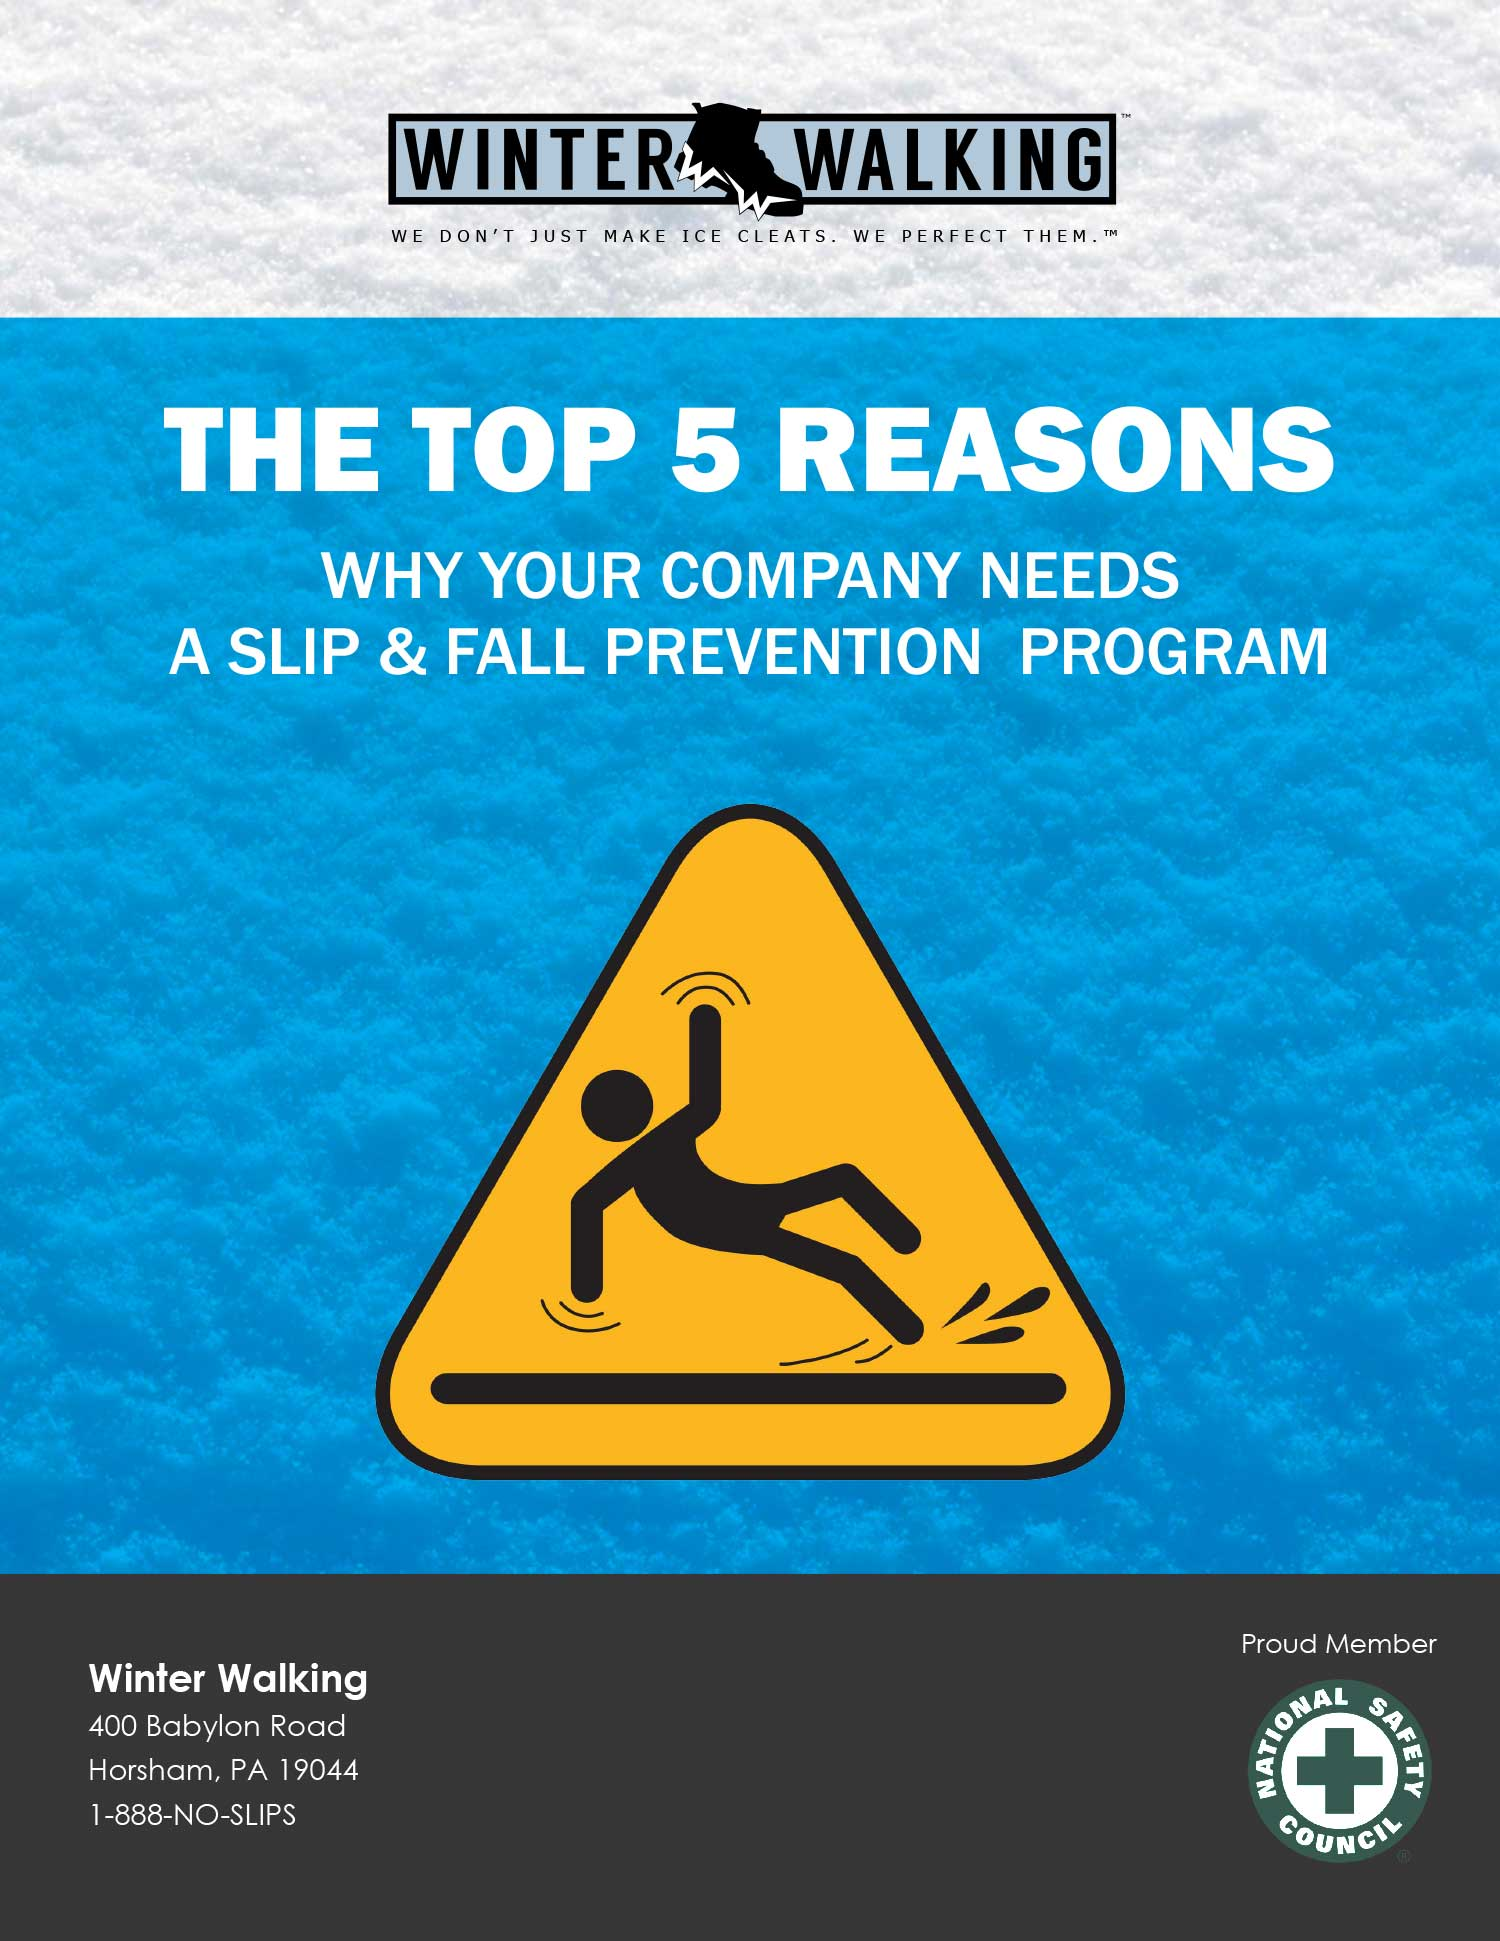 The top 5 reasons why you company needs a slip and fall prevention program